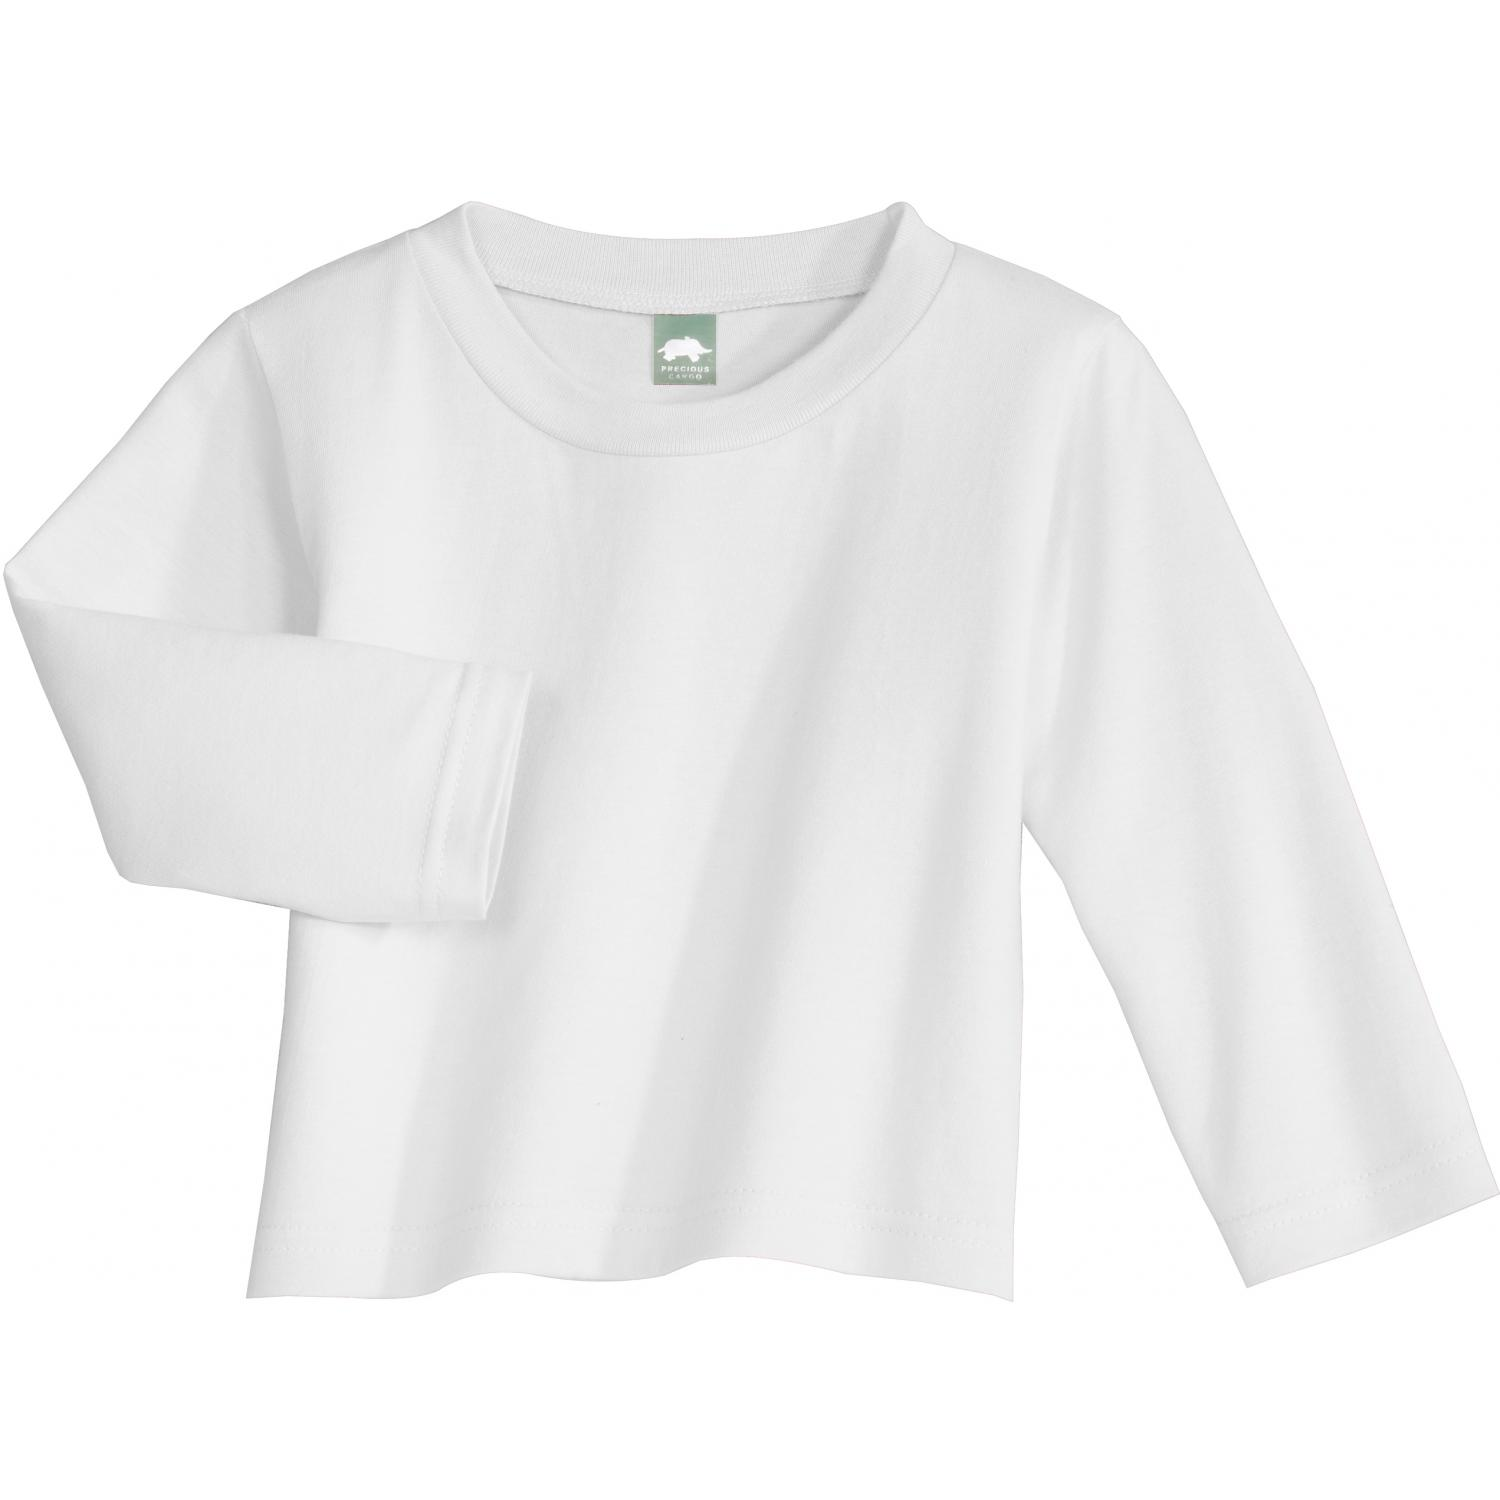 Precious Cargo Toddler Long Sleeve T-shirt 2t - White